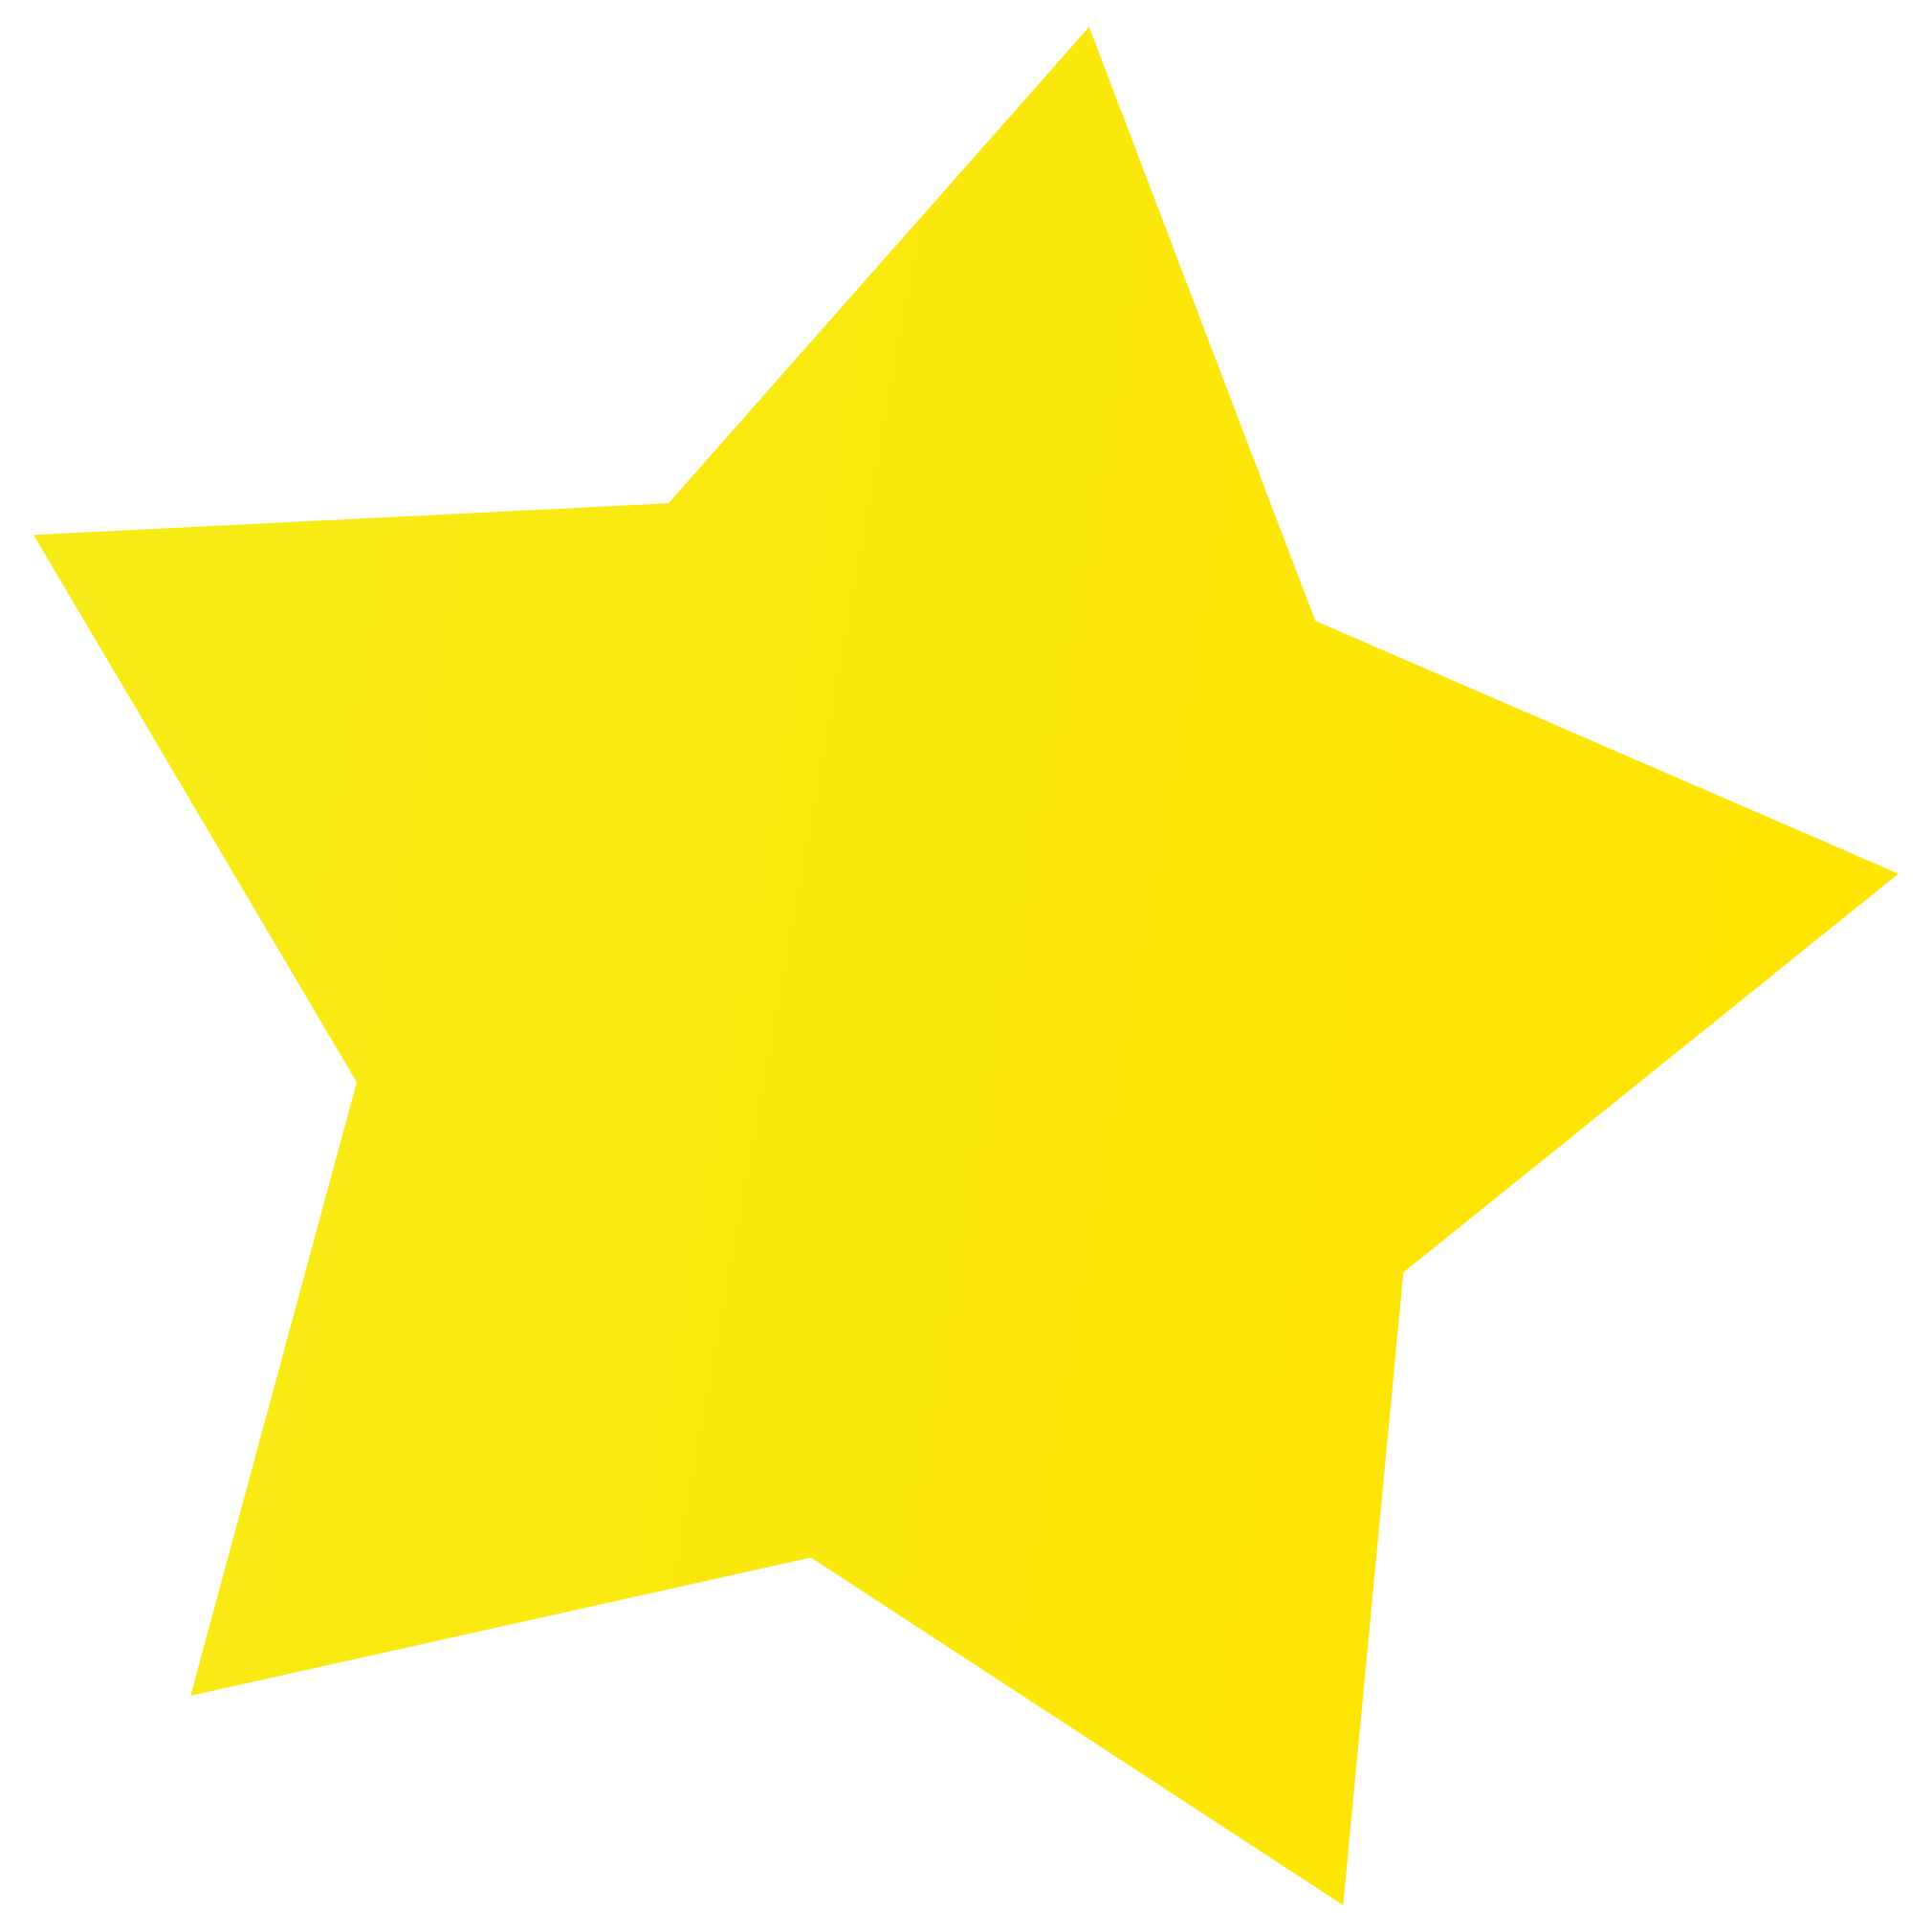 star PNG image